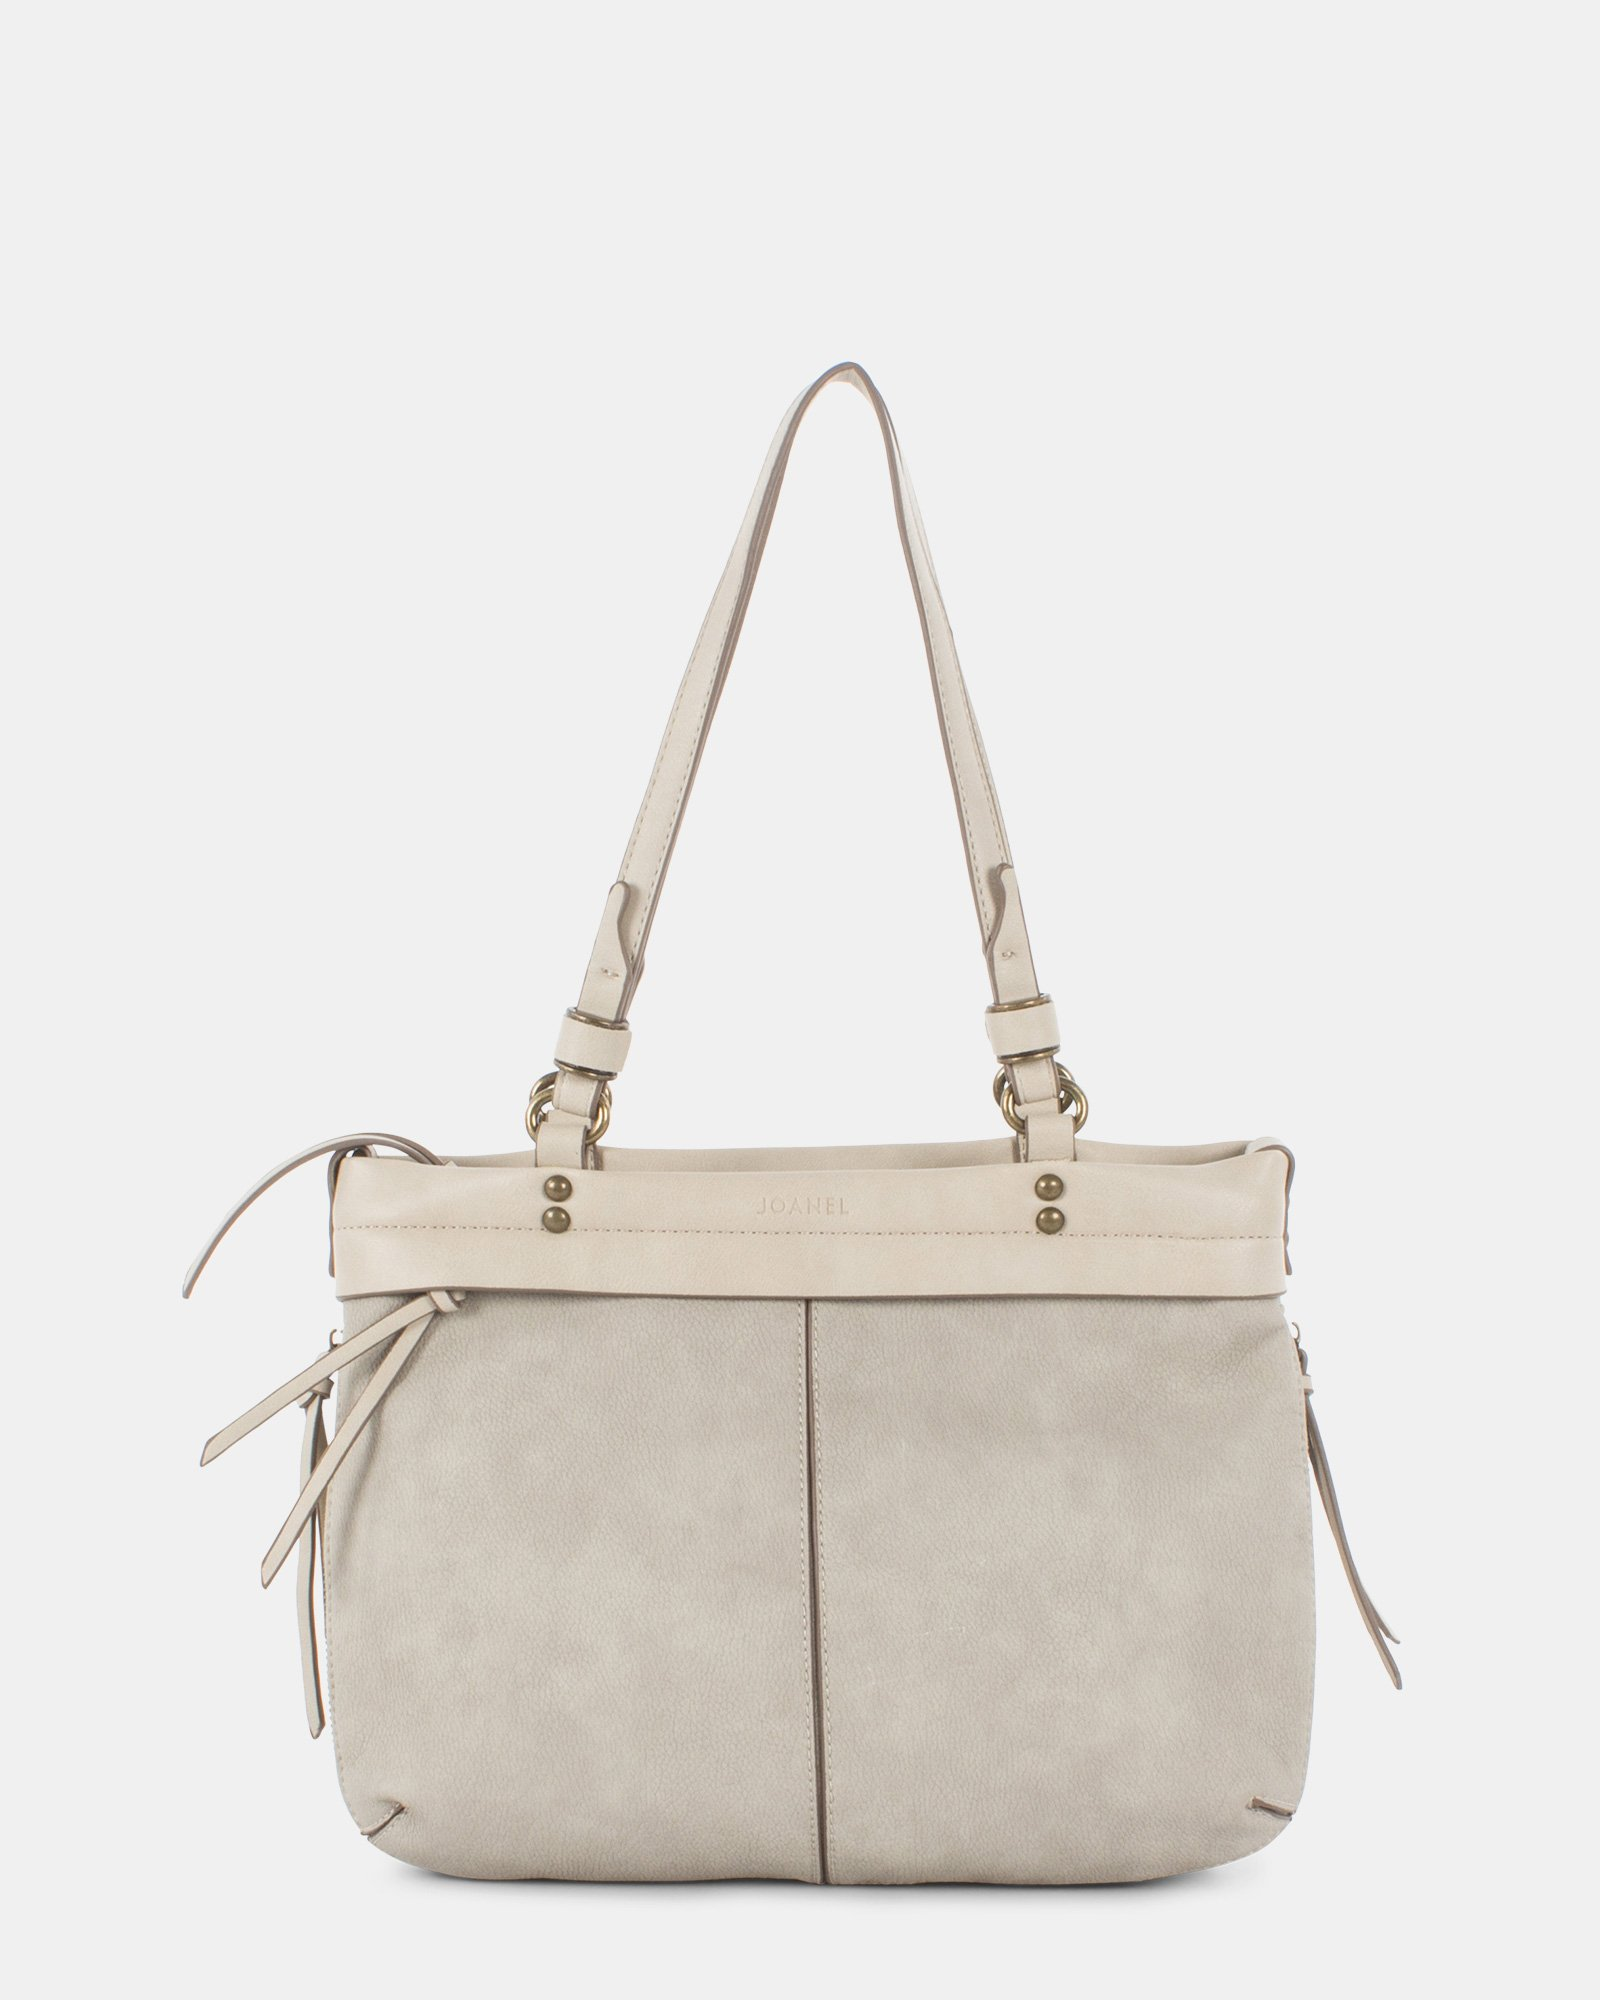 Isabelle 2.0 - Tote  - Joanel - Zoom